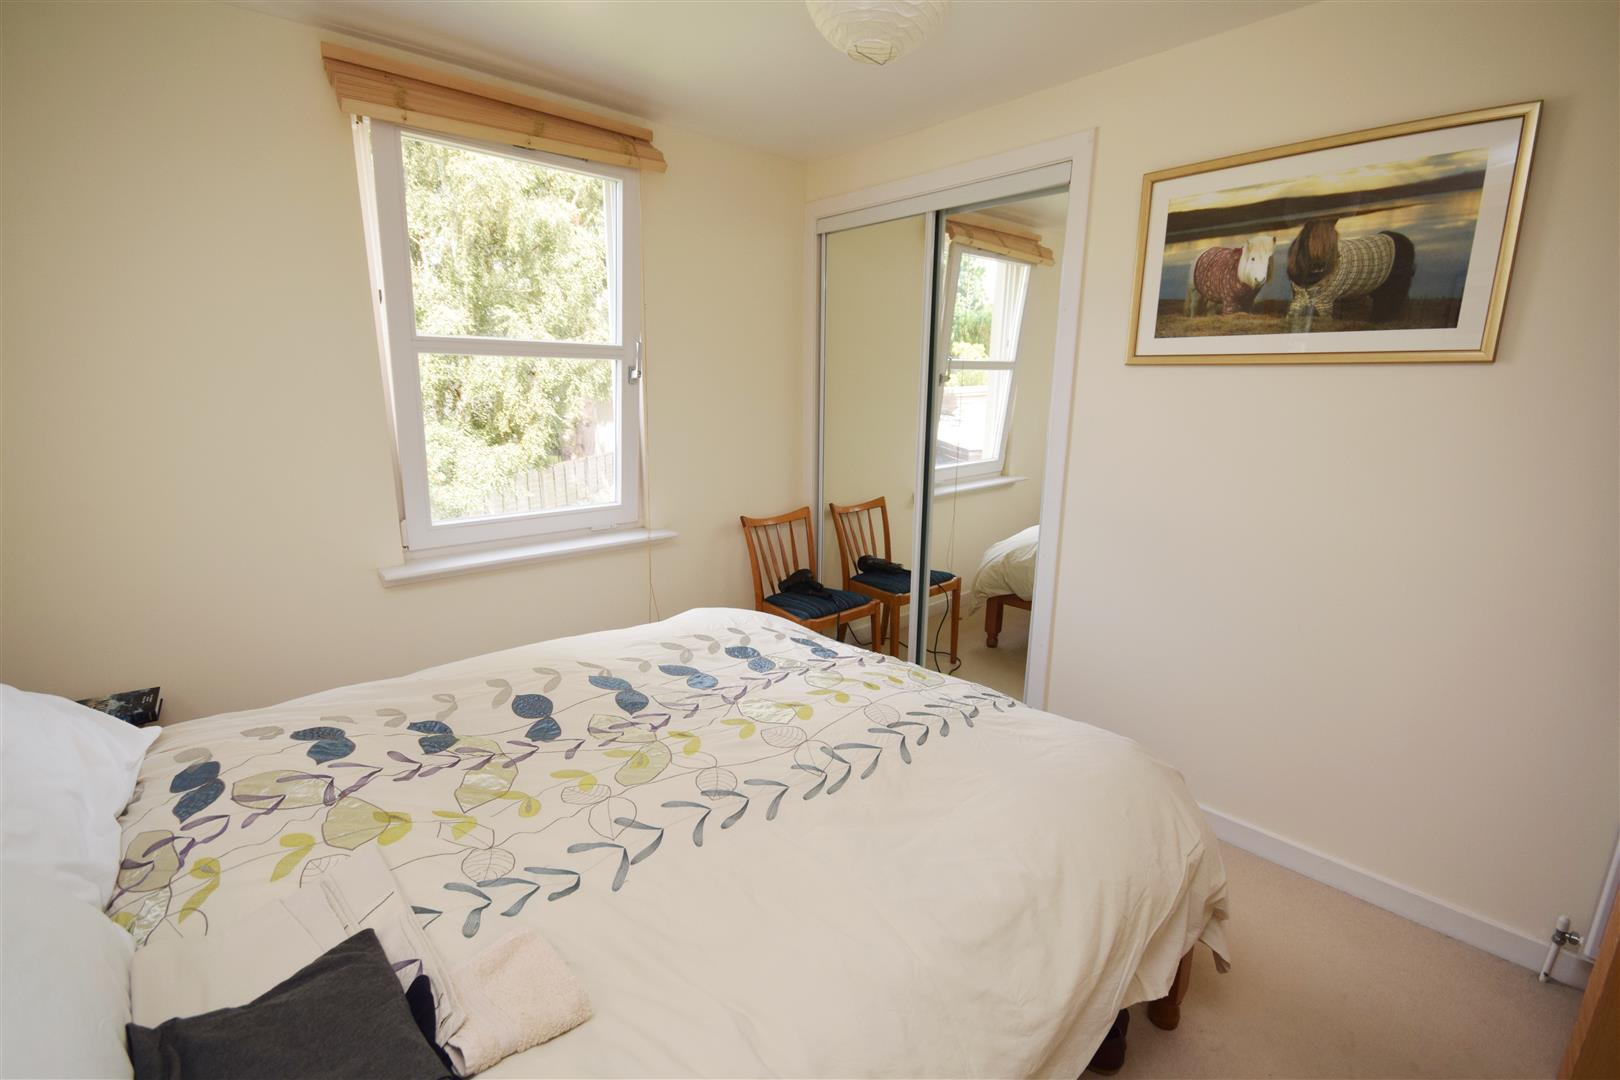 3, Dean court, Tom-Na-Moan Road, Pitlochry, PH16 5NW, UK